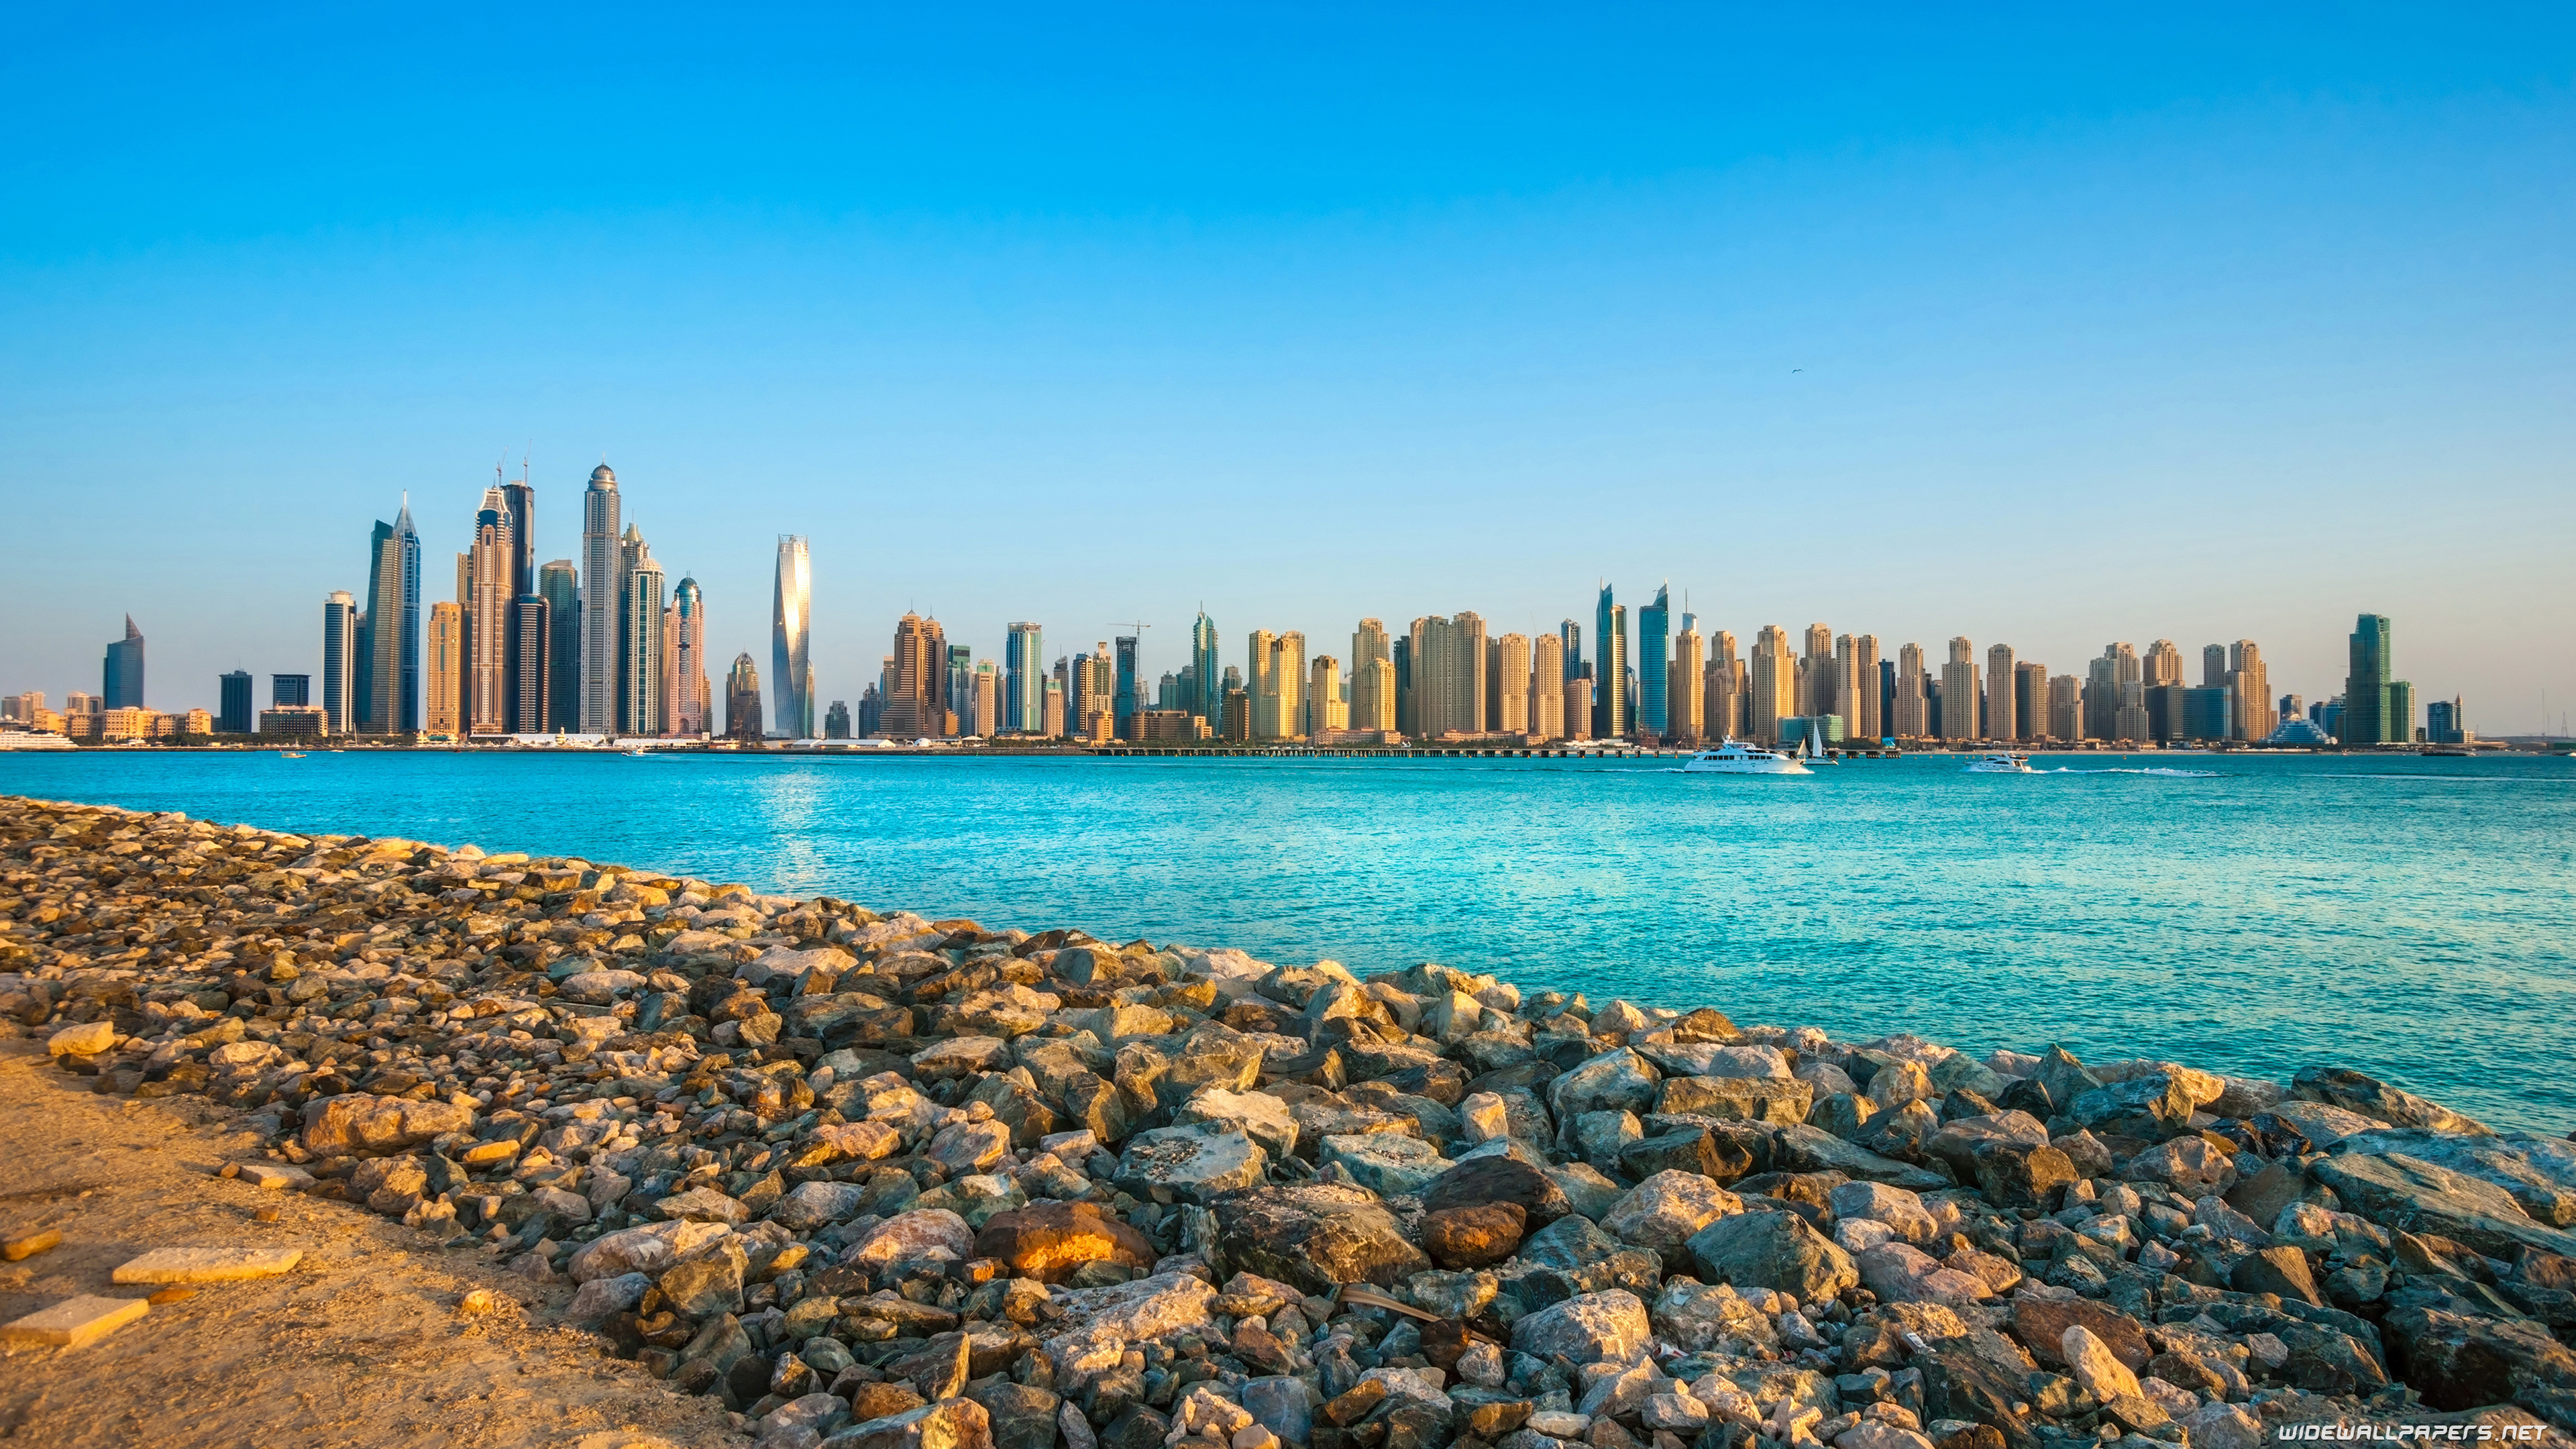 dubai wallpapers 4k ultra hd dubai 2560x1440 2560x1600 3840x2160 3840x2400 background 4k ultra hd